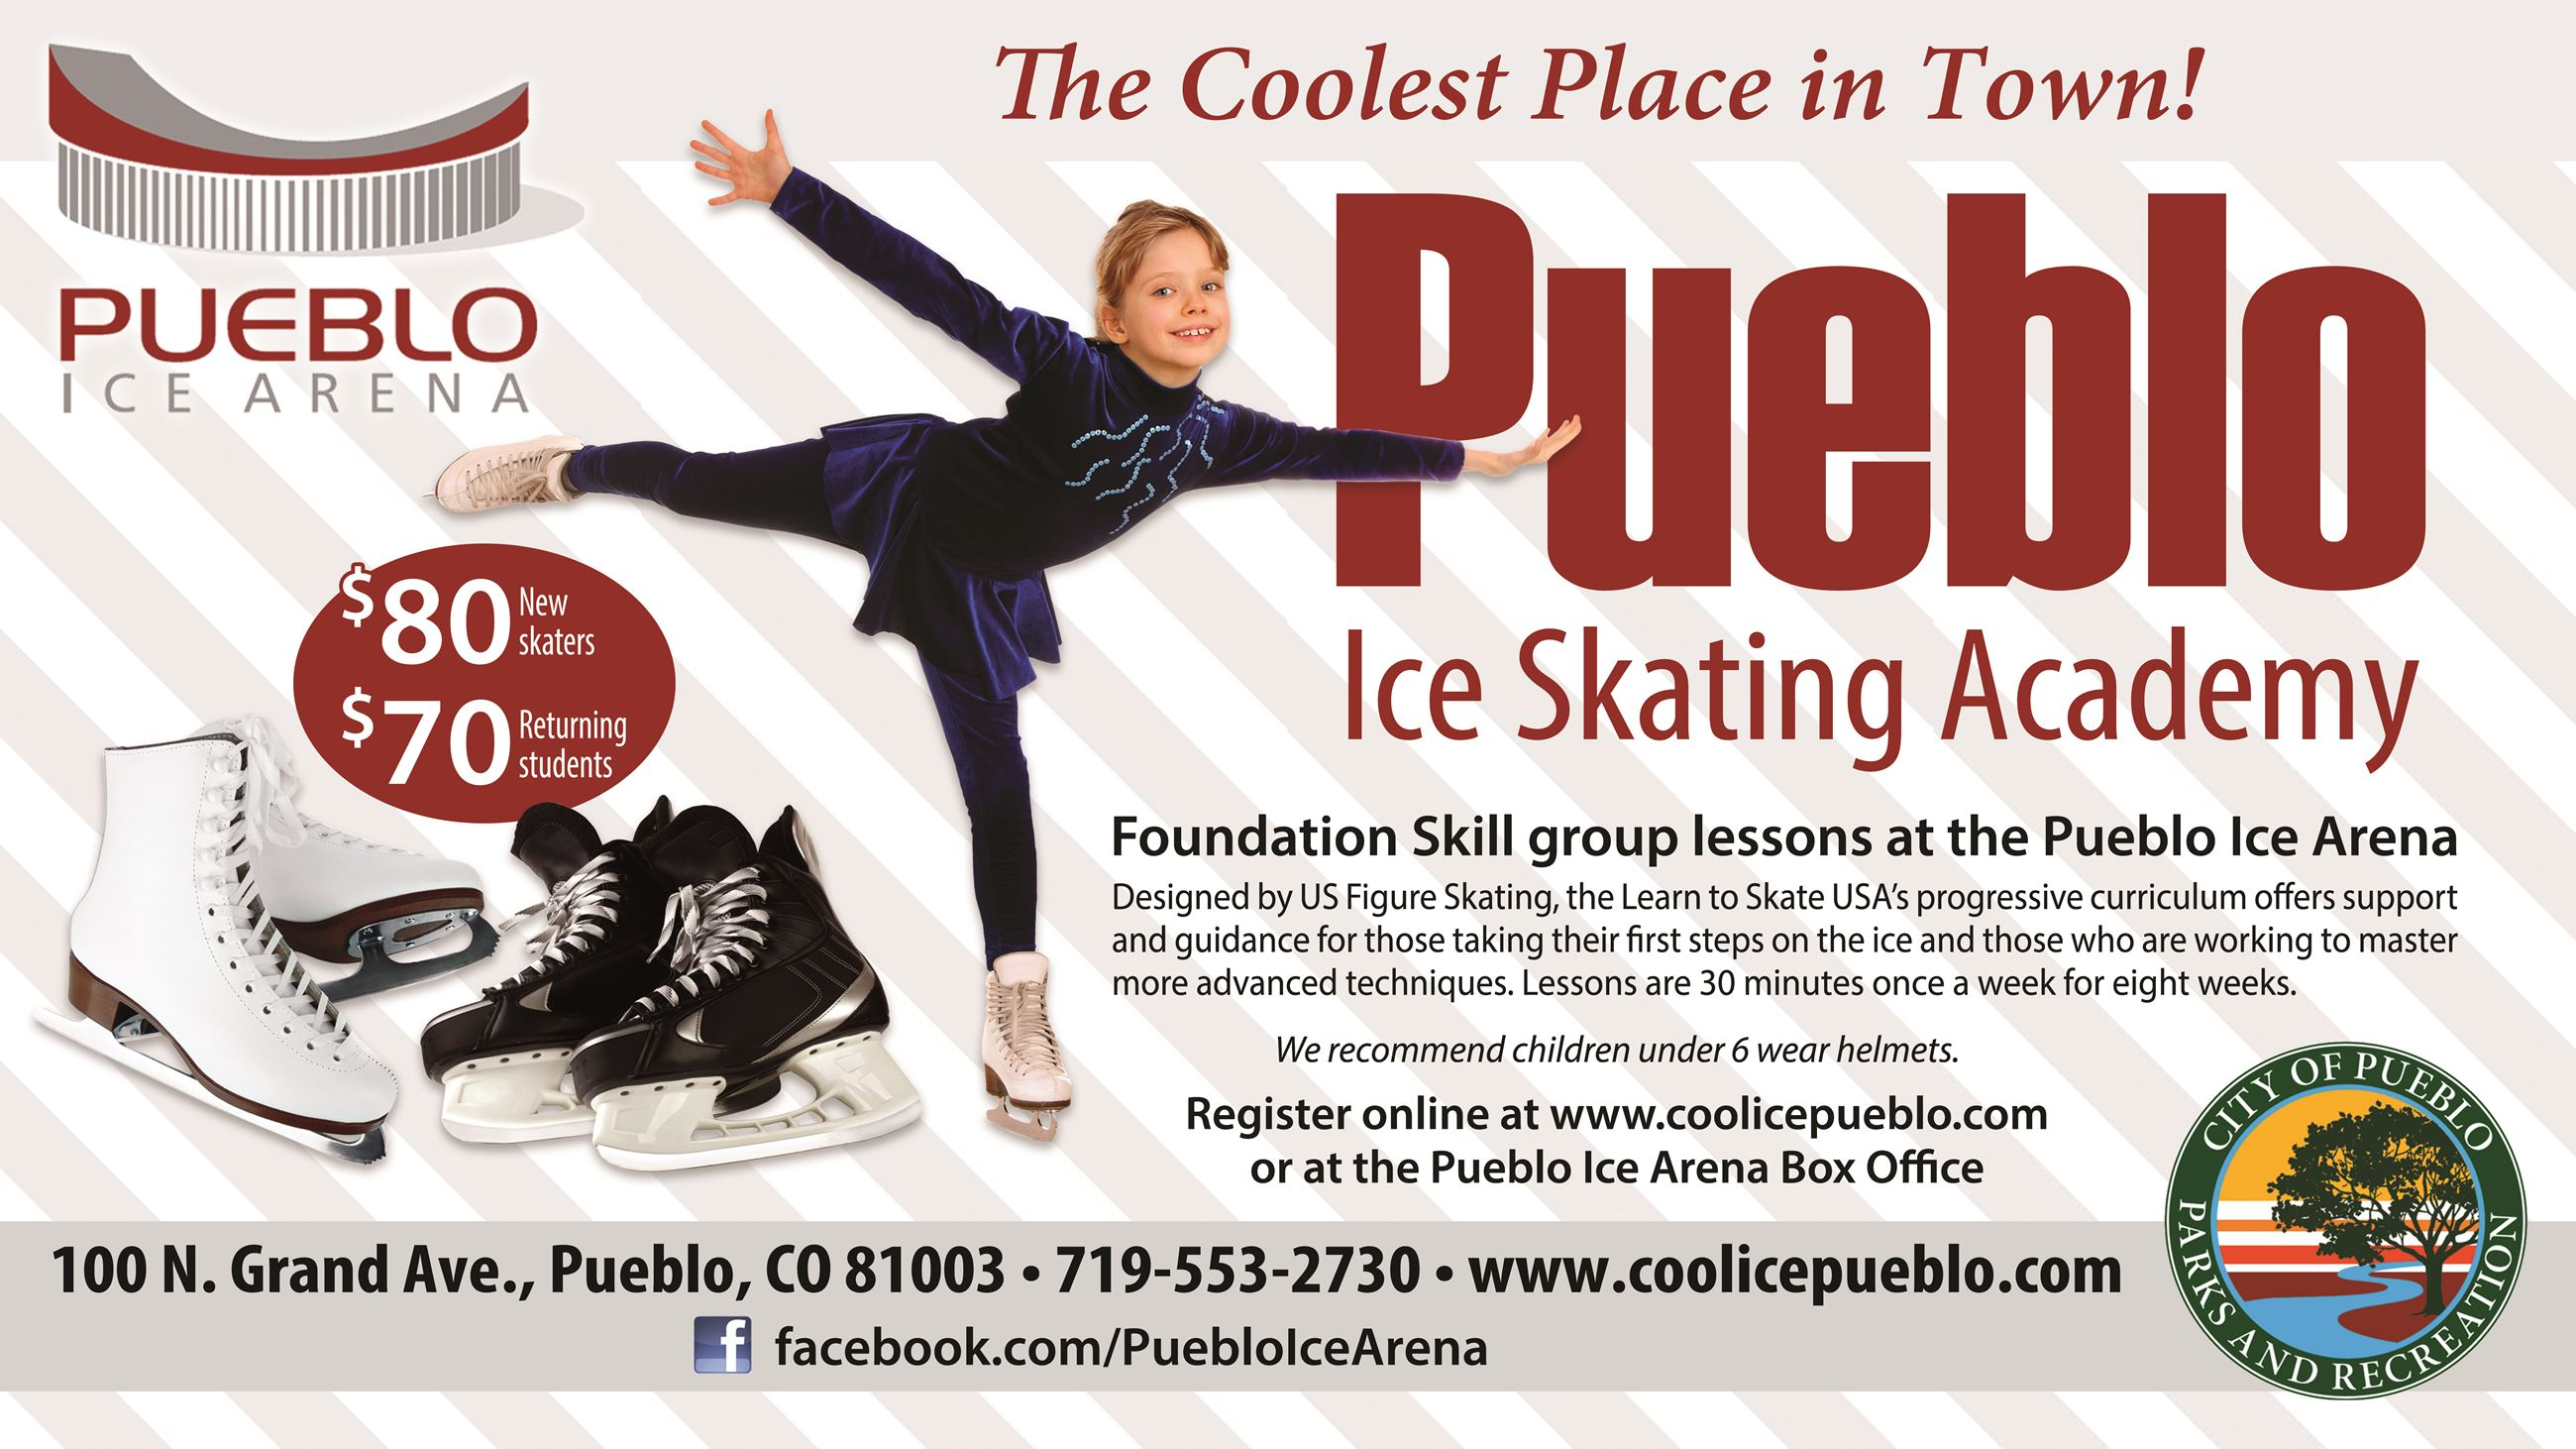 image of ice skating academy information